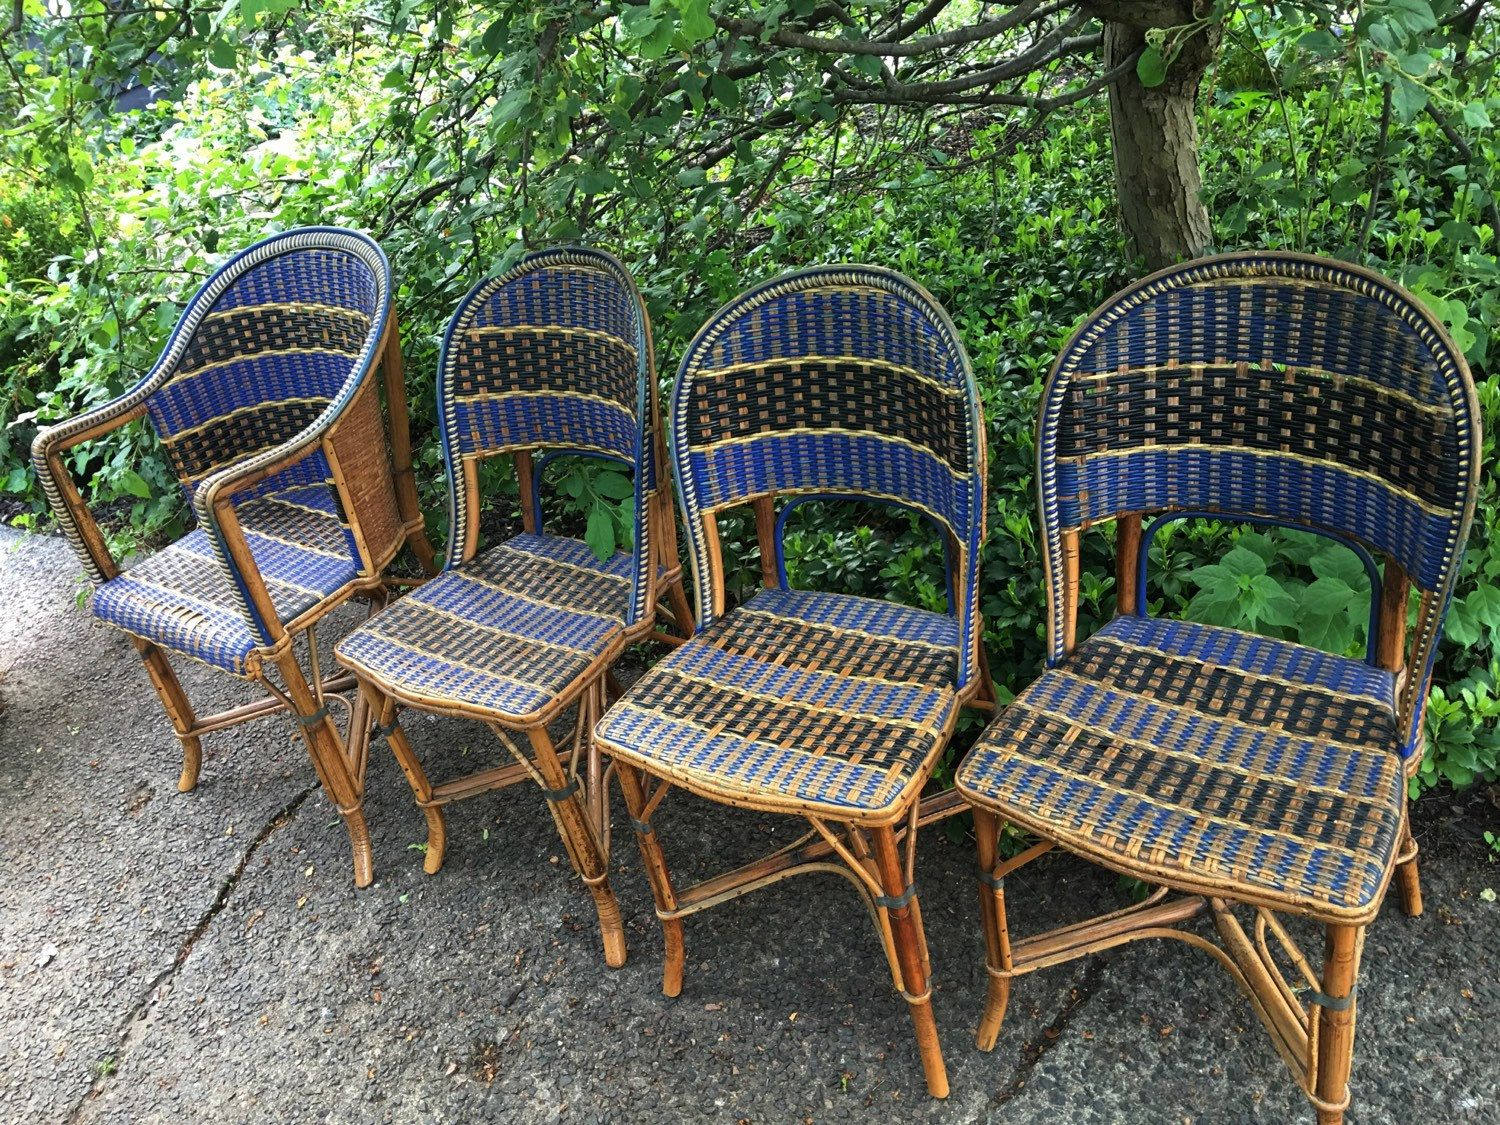 Antique French Bistro Rattan Chairs French Country Chairs French Country Bistro Chairs Vintage Blue Ra French Country Chairs Rattan Chair French Antiques